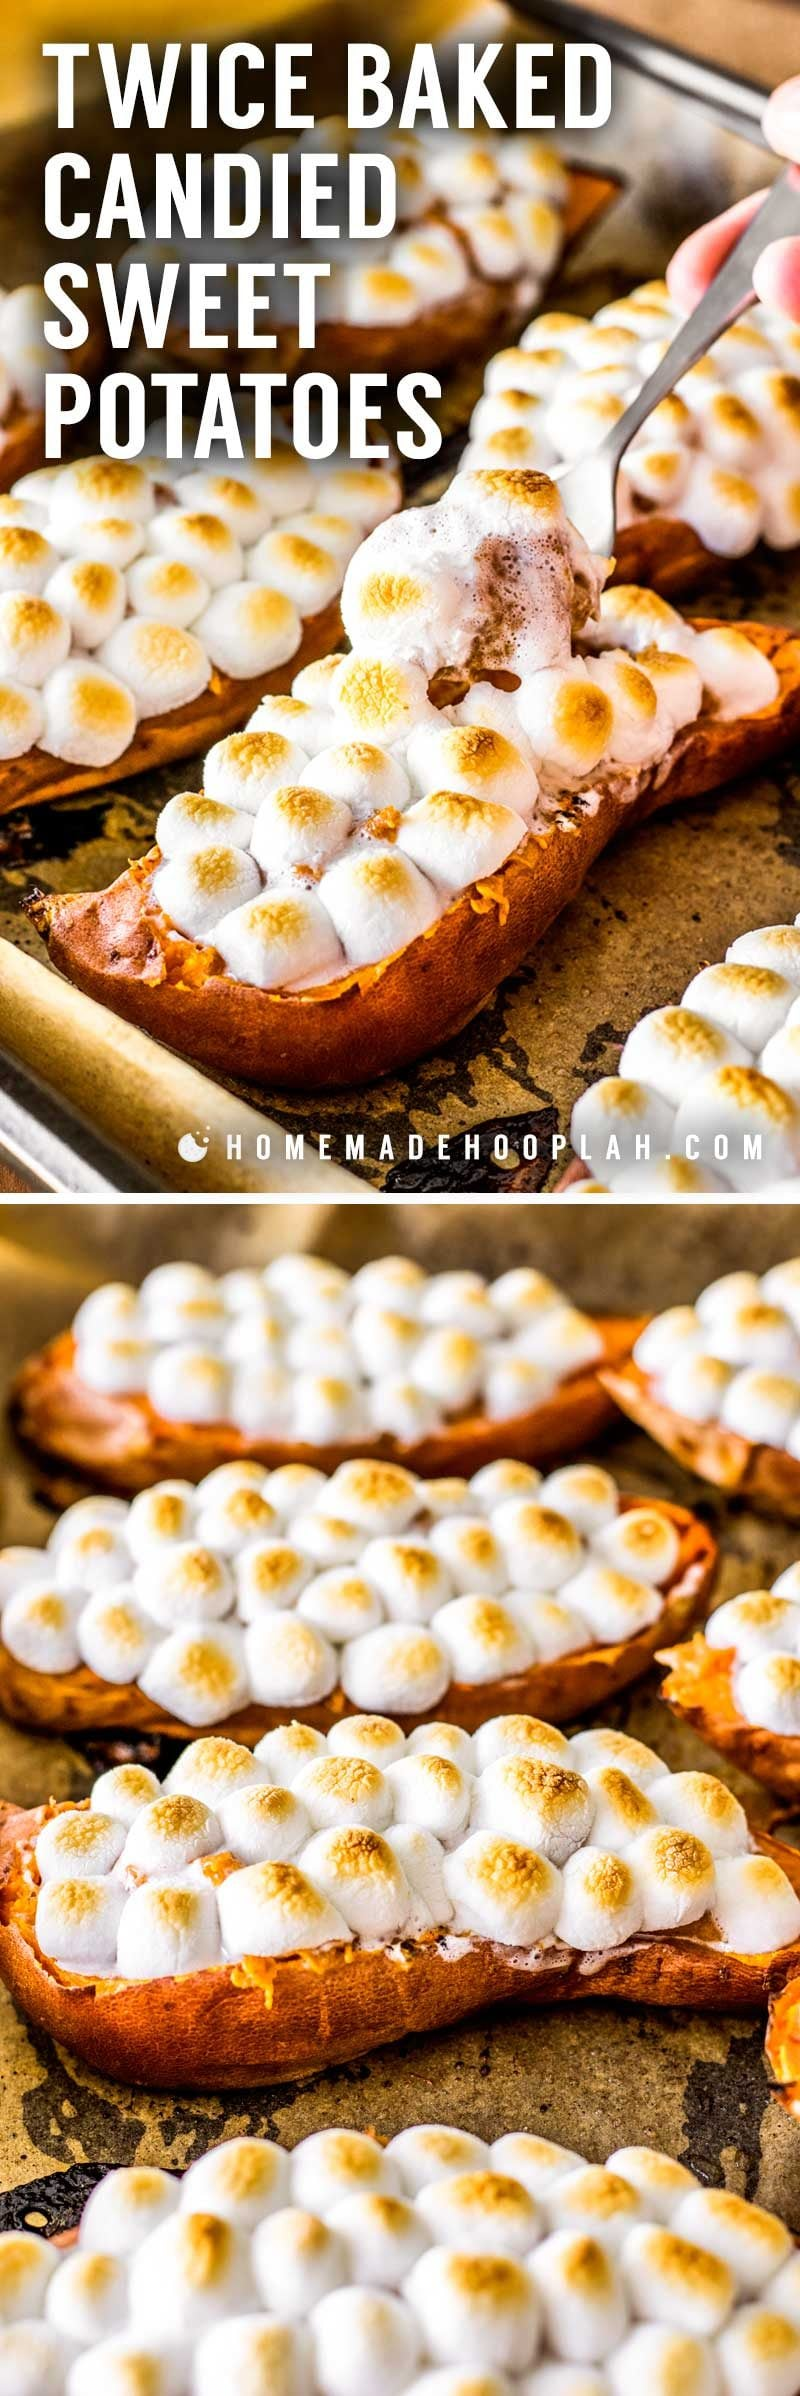 Twice baked sweet potatoes with marshmallow topping.